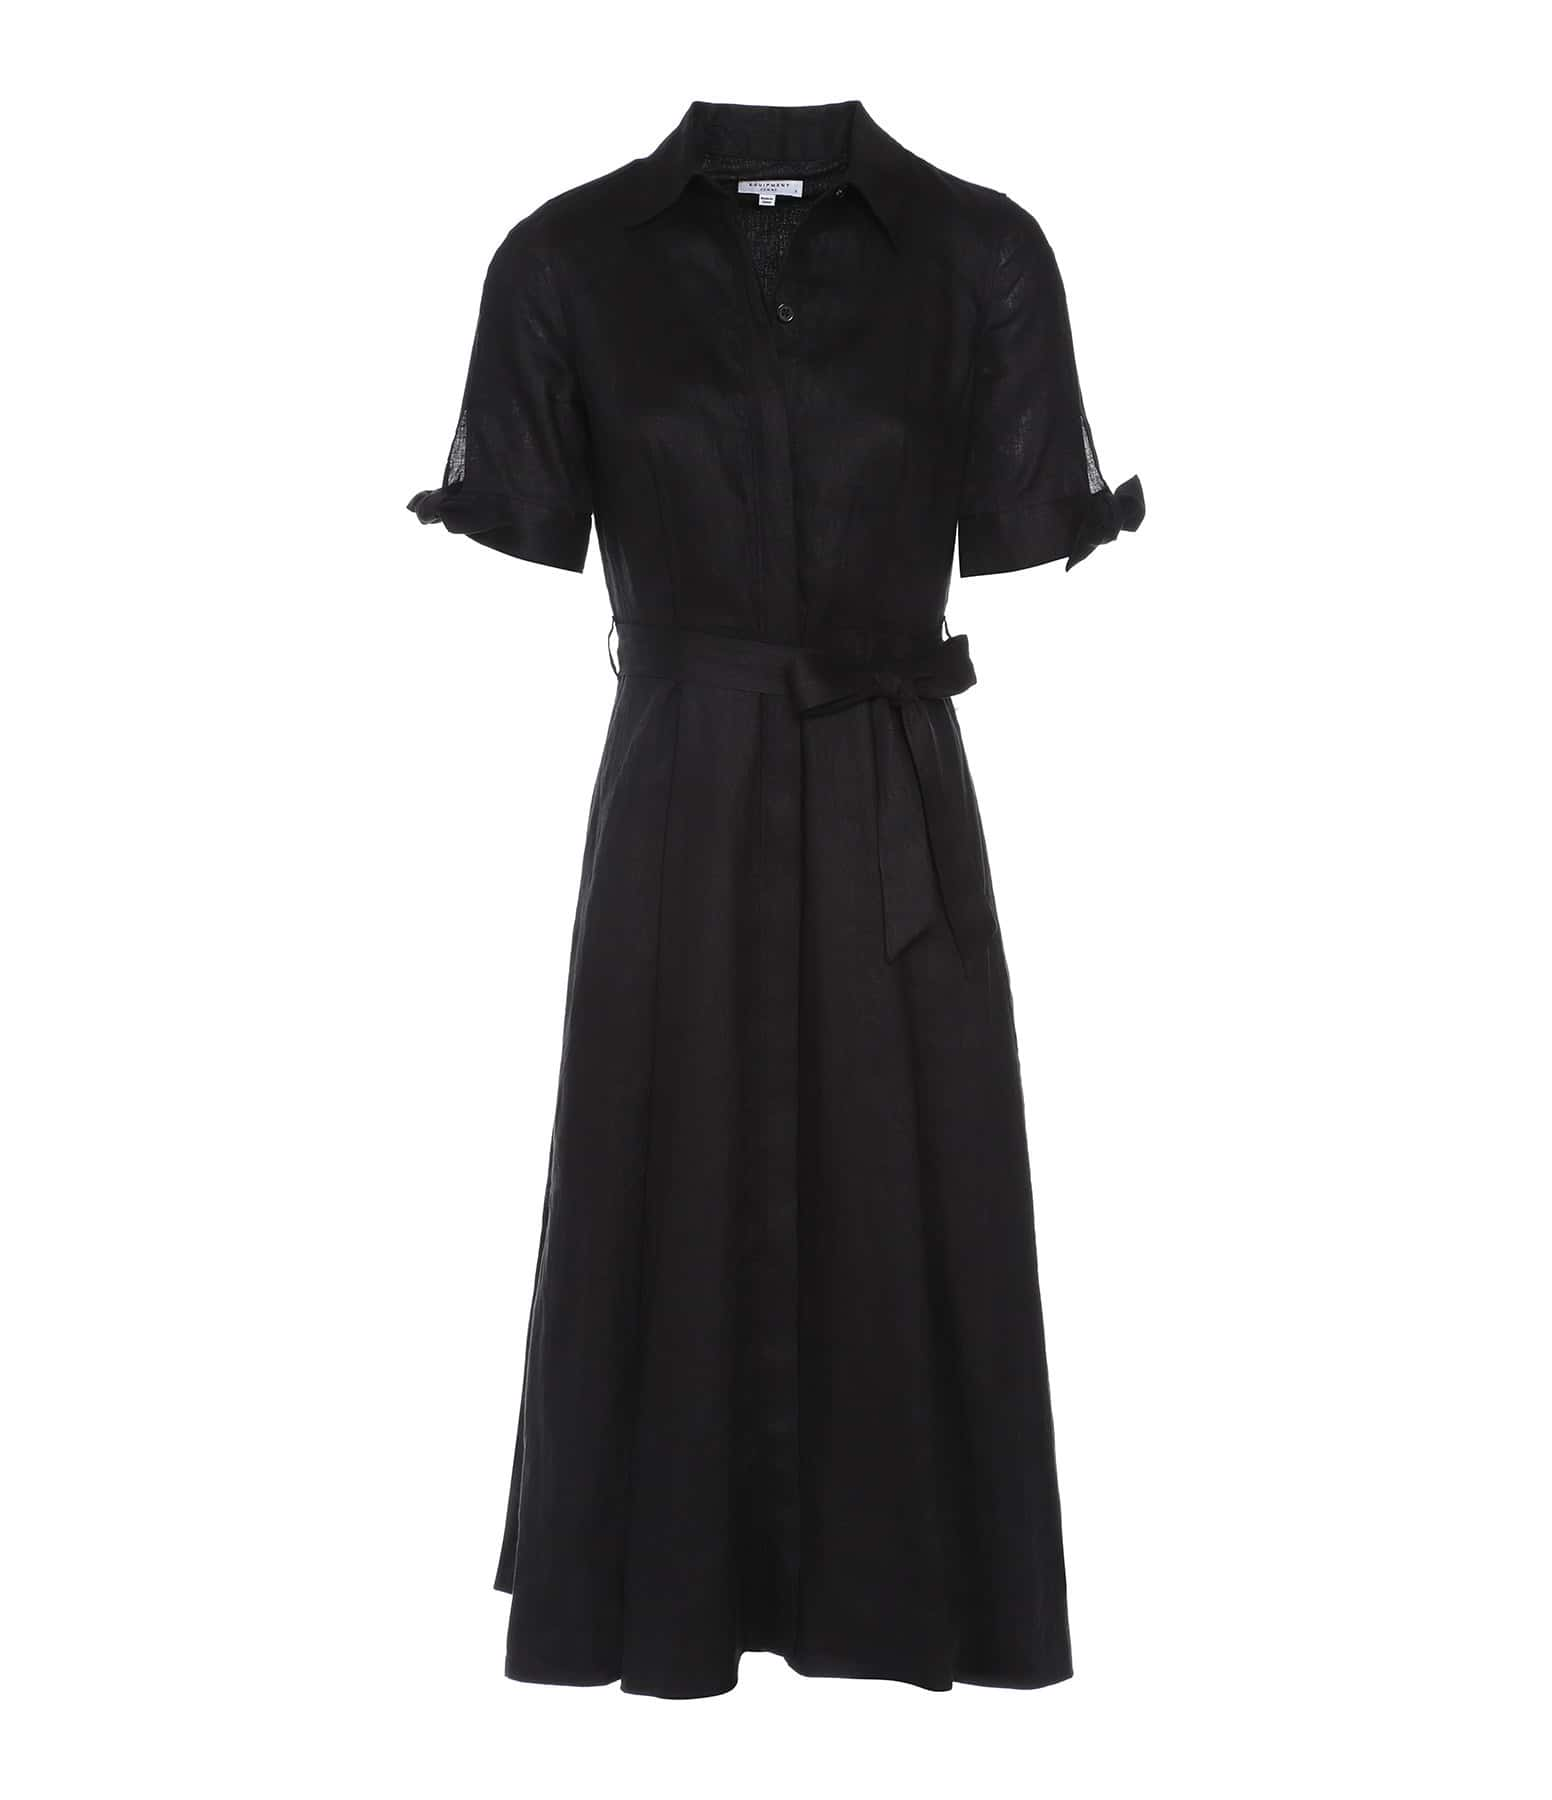 EQUIPMENT - Robe Irenne Lin Noir